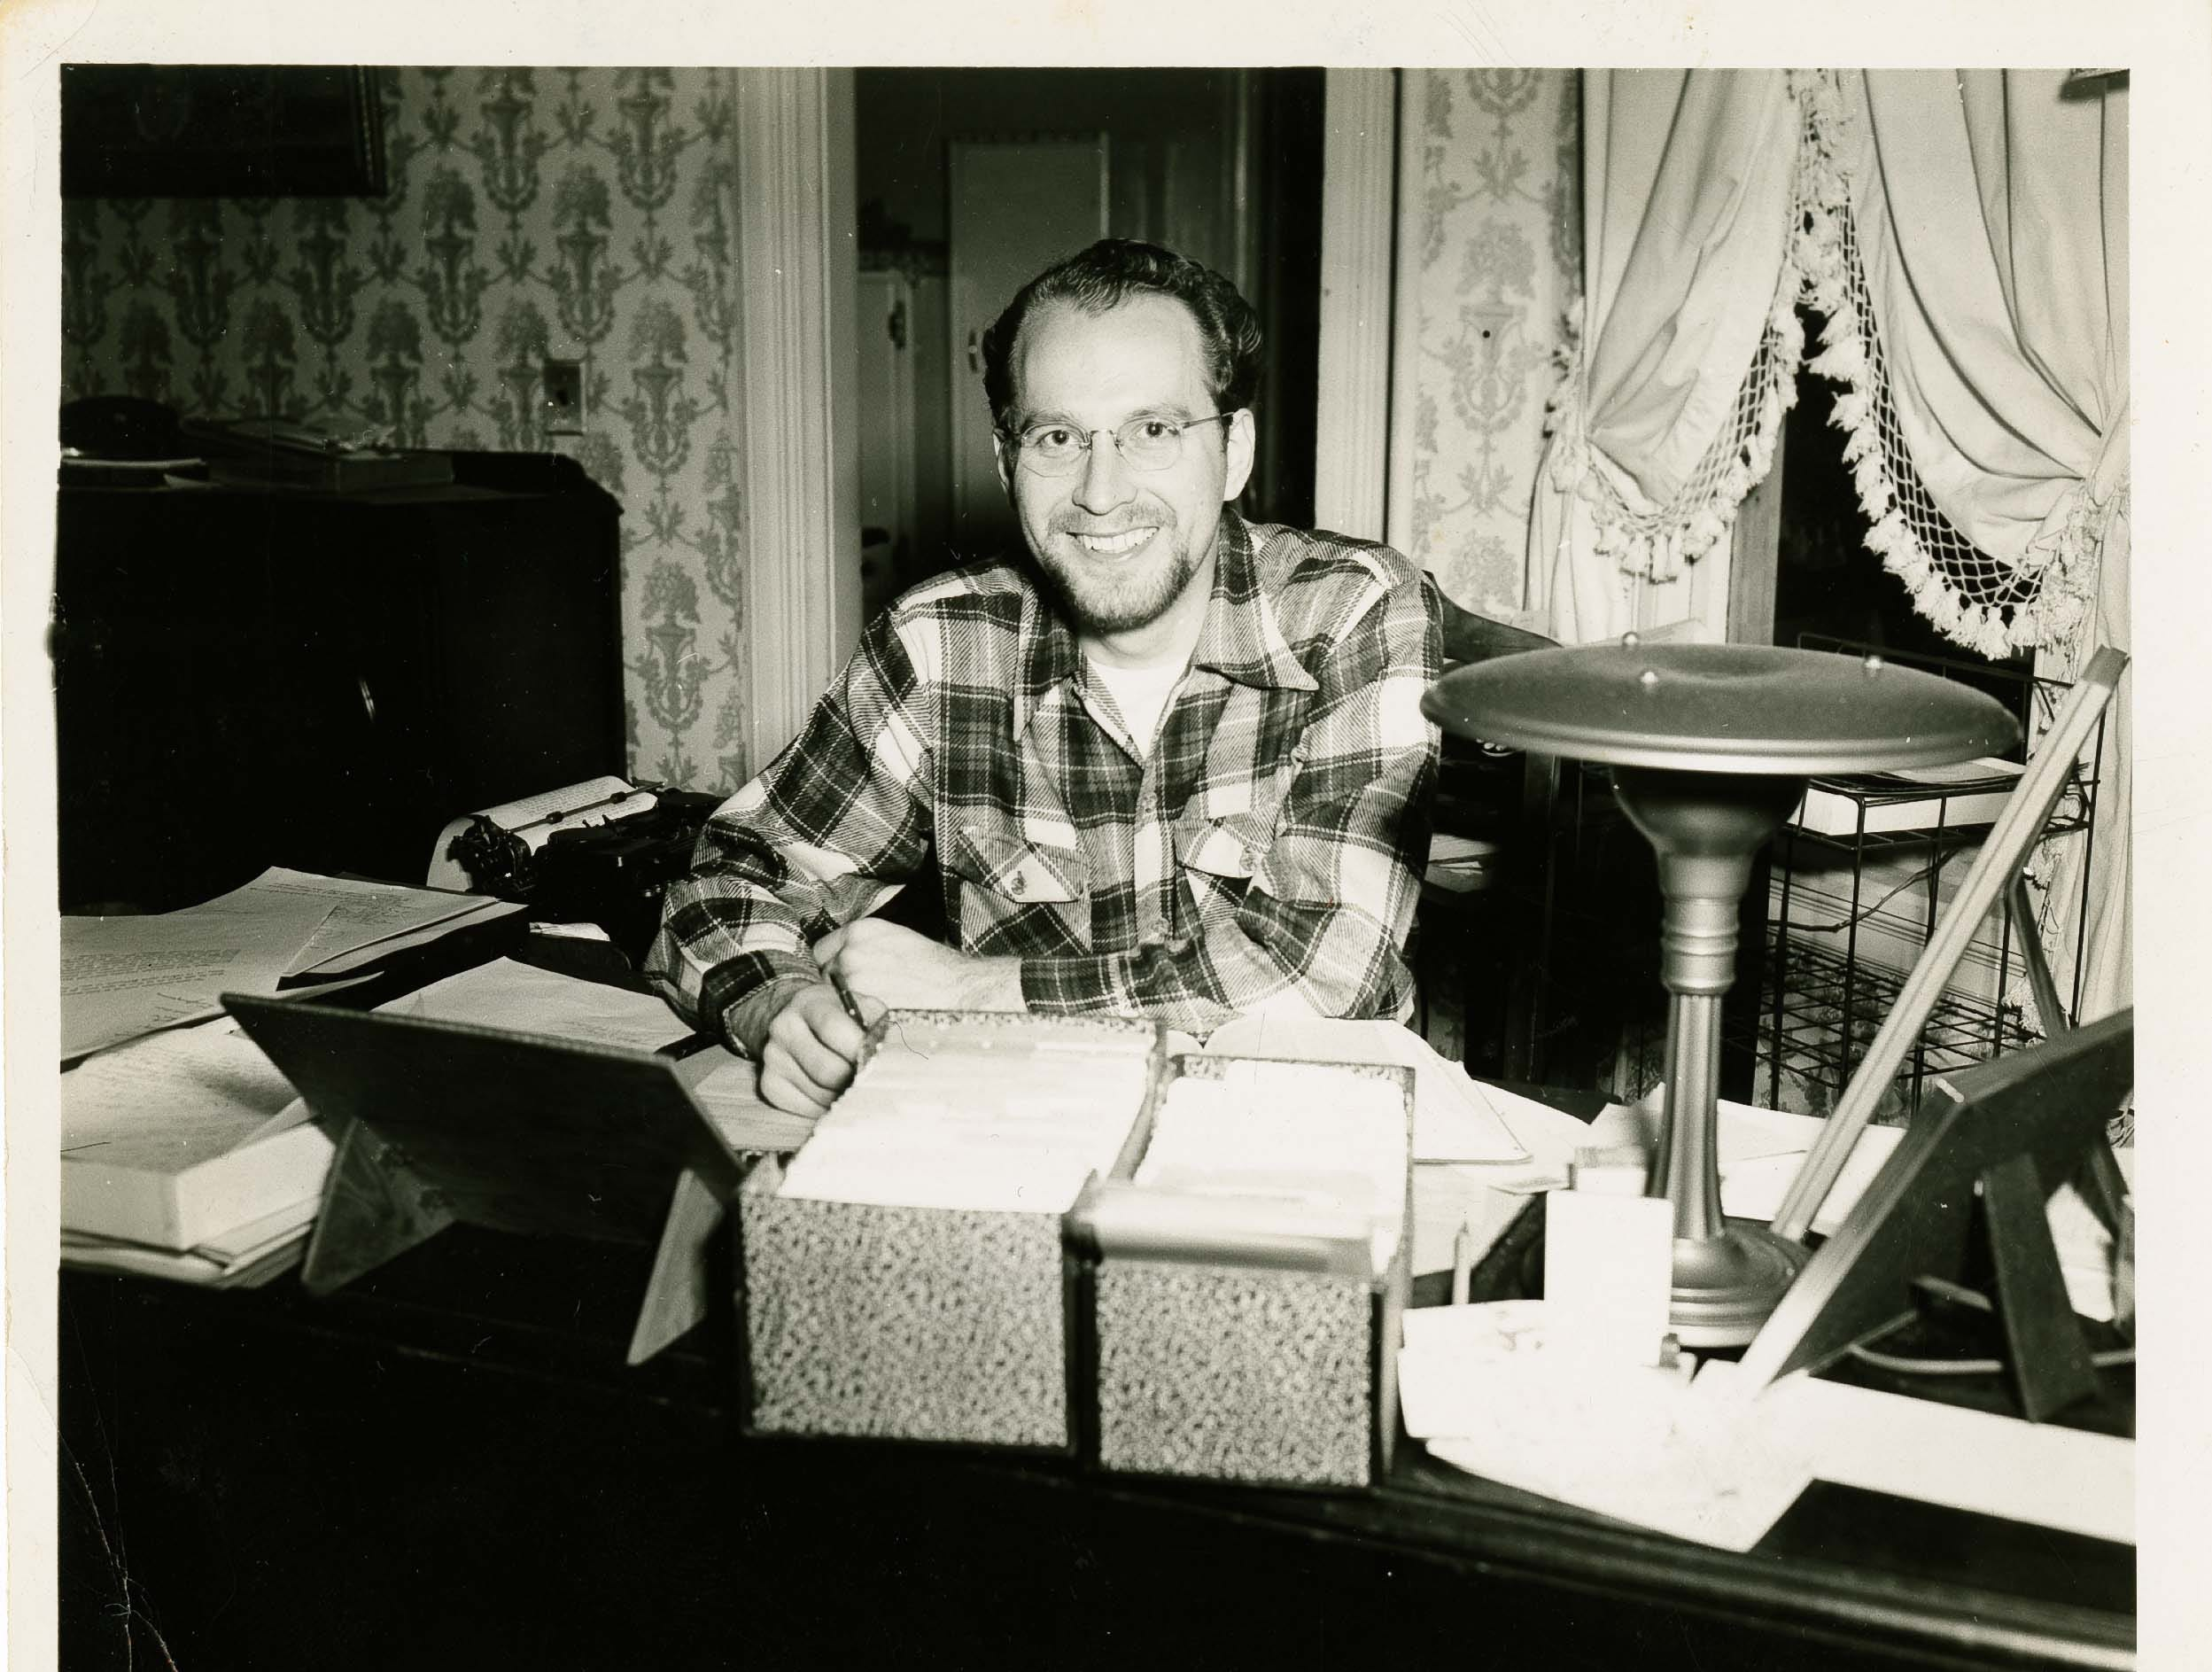 A young Glenn Olds in a photograph dated 1948, around the time he received his doctorate from Yale University. Olds graduated from Willamette University in 1941 and went on to earn a bachelor of divinity degree from Garrett Theological Seminary and a master of arts degree in philosophy from Northwestern University.